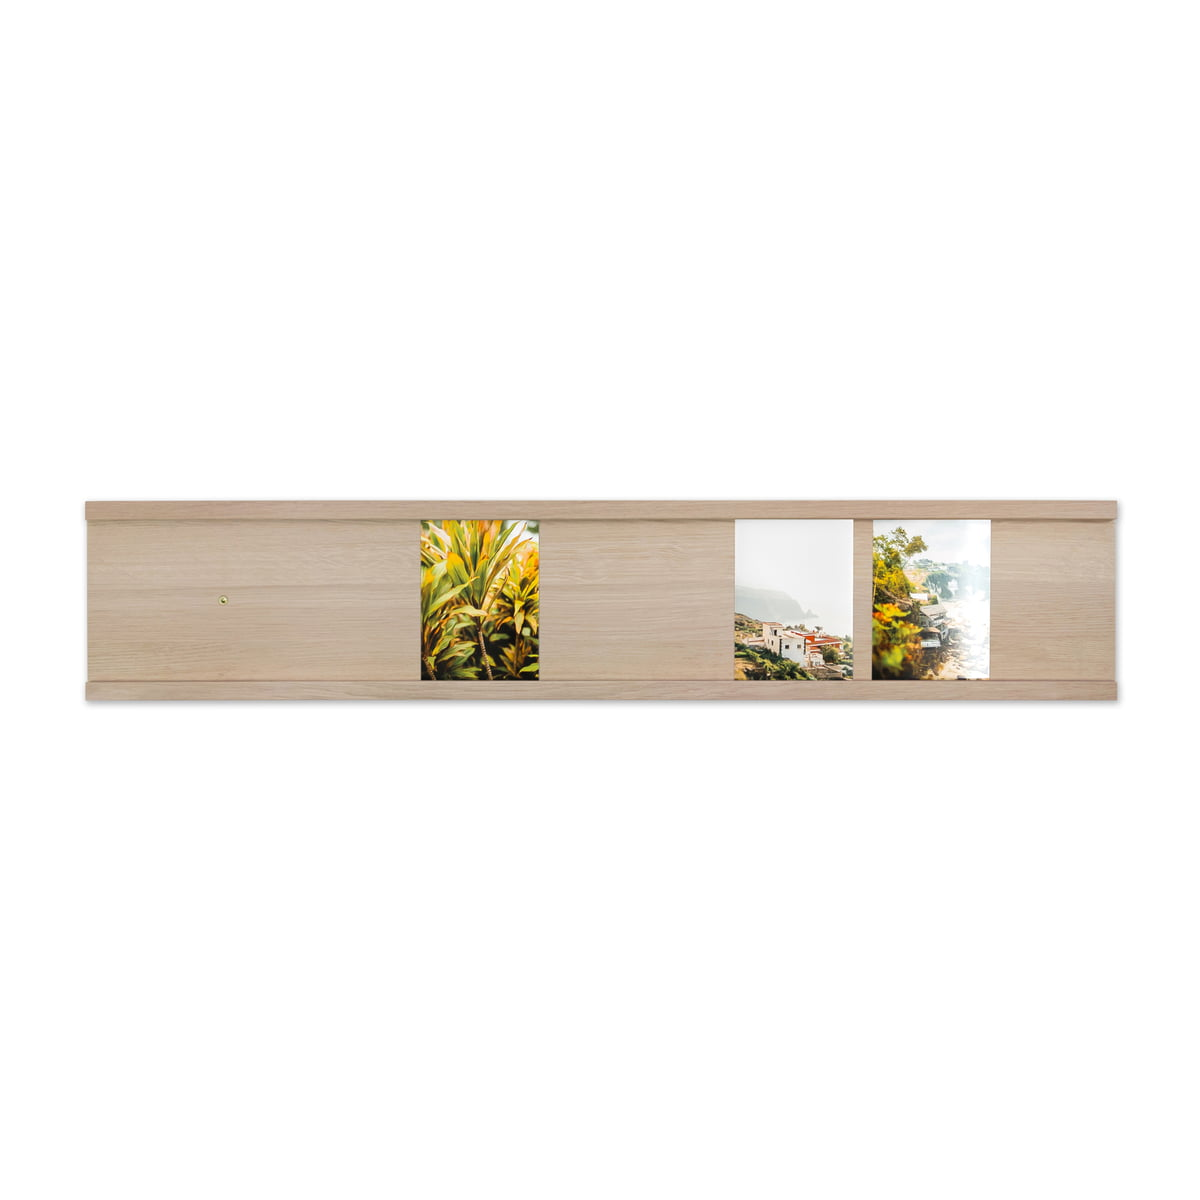 Purchase the wooden picture rail now | Connox